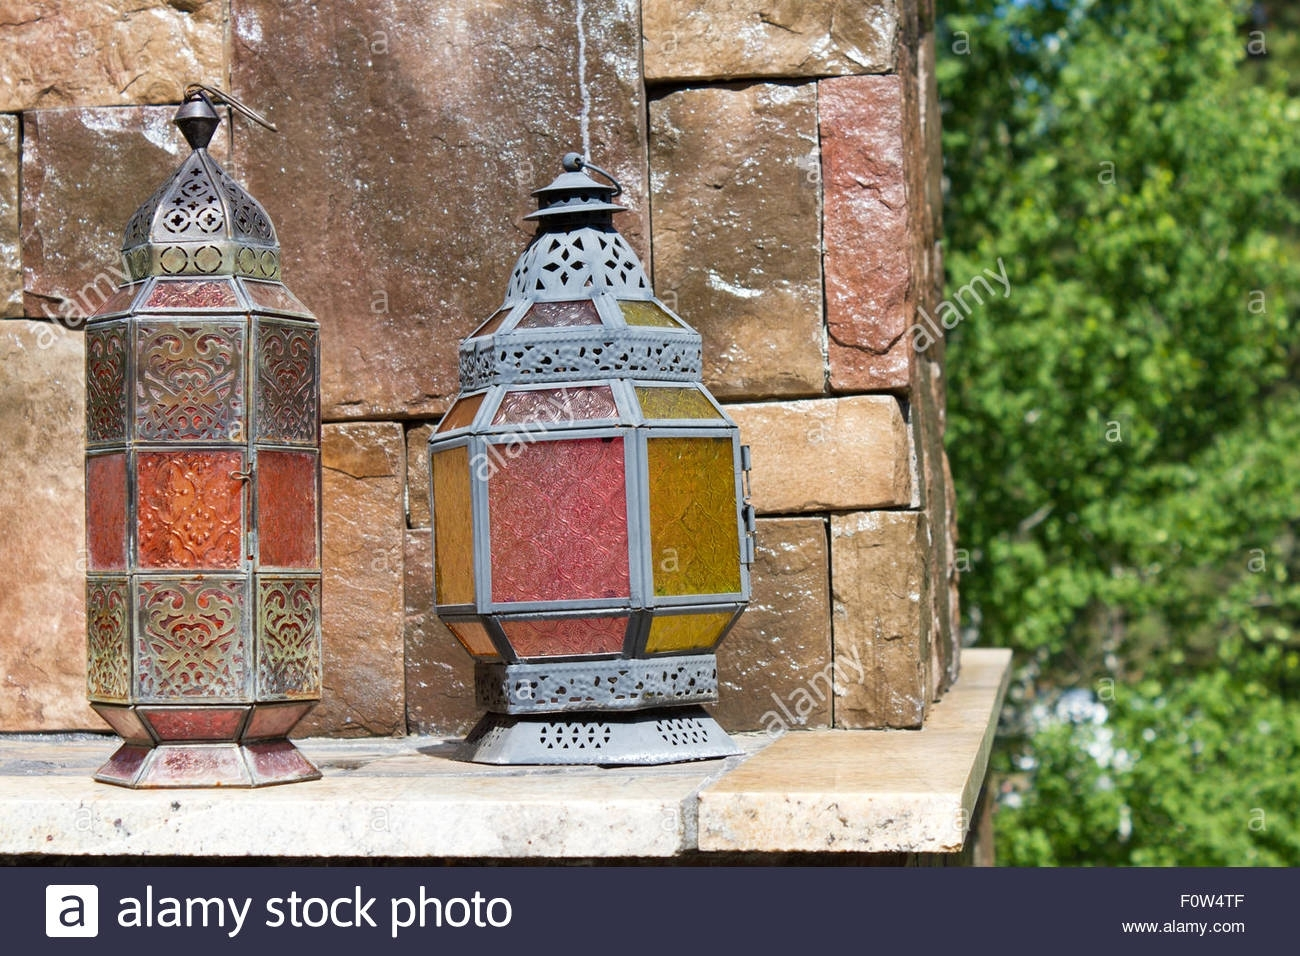 Antique Looking Metal Lanterns With Colorful Stained Glass Panels regarding Colorful Outdoor Lanterns (Image 1 of 20)